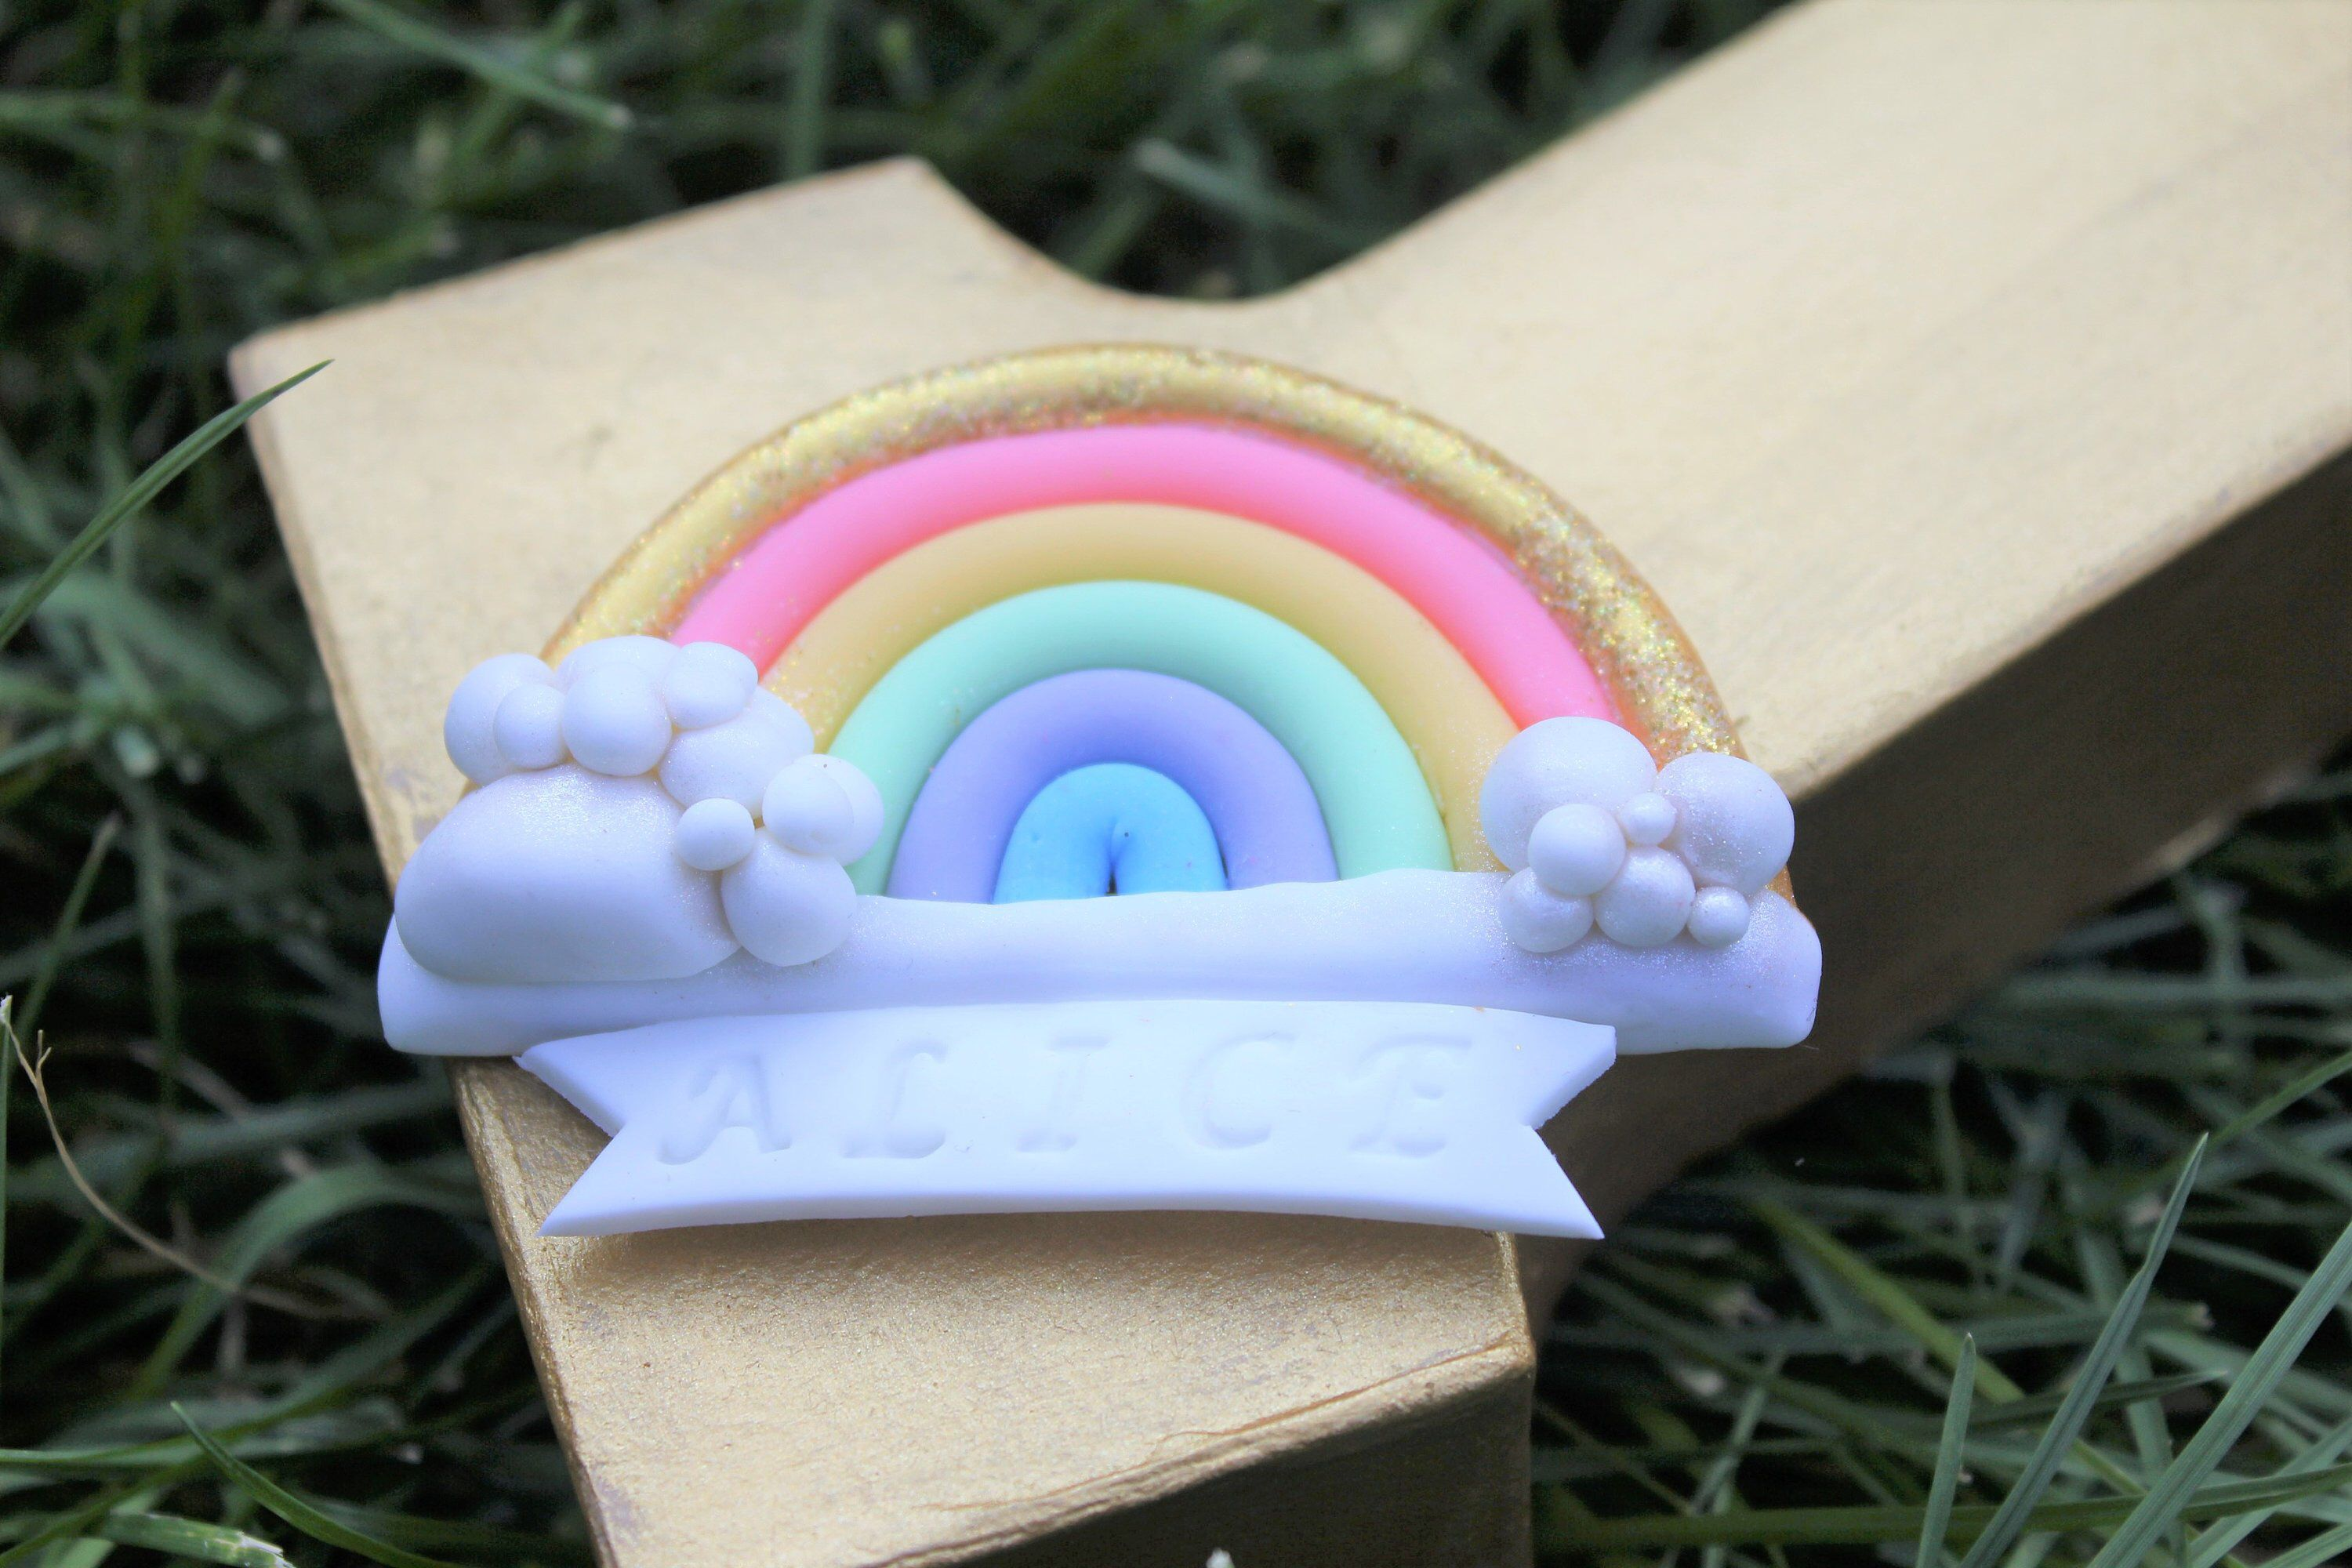 Unicorn rainbow magnet/unicorn birthday party favor/unicorn birthday party/unicorn decoration/unicorn magnet/rainbow party favor/rainbow Excited to share the latest addition to my shop: Unicorn rainbow magnet, unicorn birthday party favor, unicorn birthday party, unicorn decoration, unicorn fridge magnet, unicorn magnet,